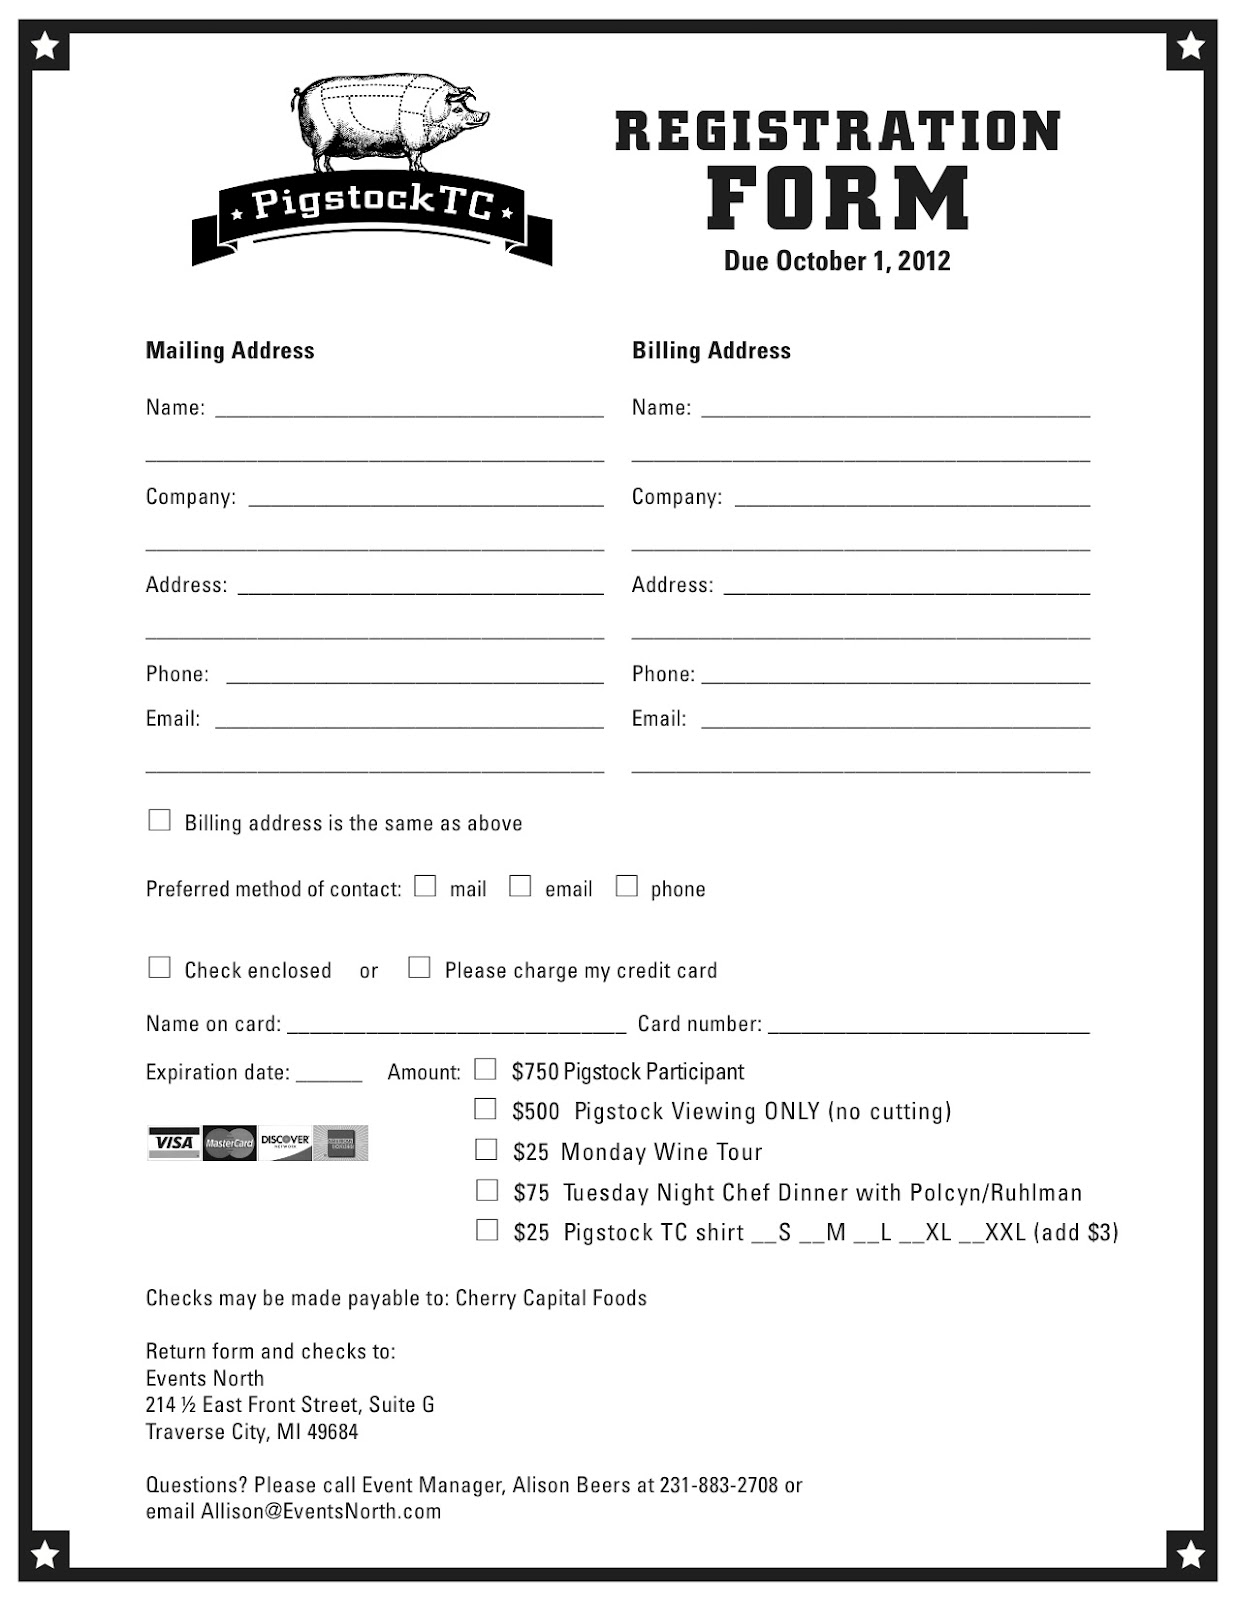 Application form registration form template printable for Course enrolment form template